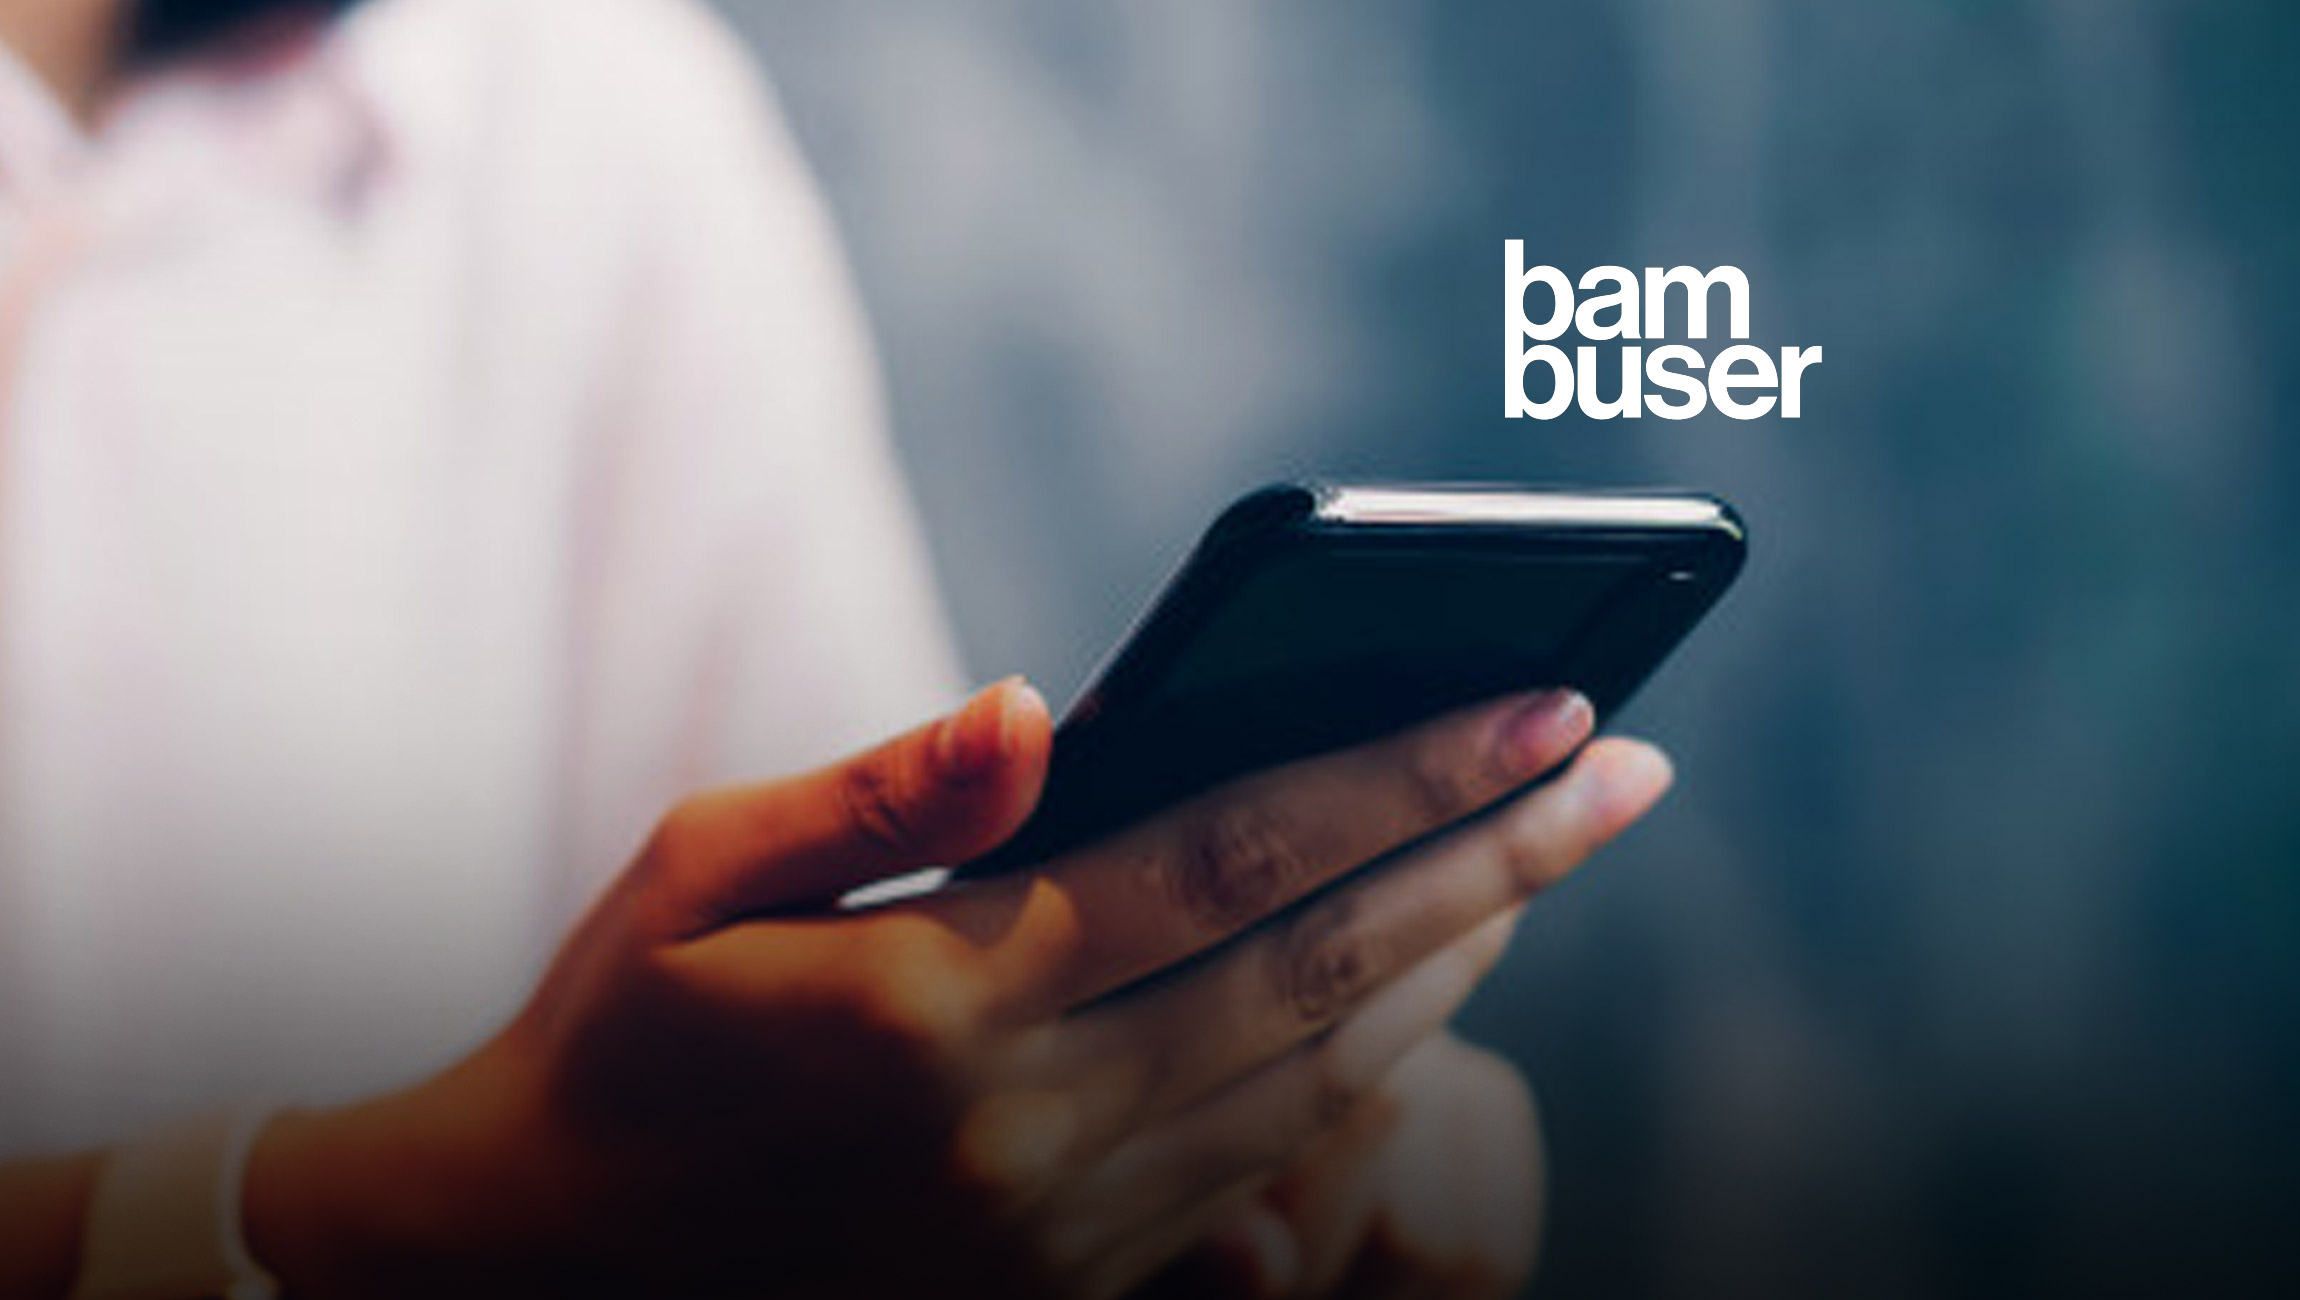 Bambuser Launches New Shopify App for Live Video Shopping